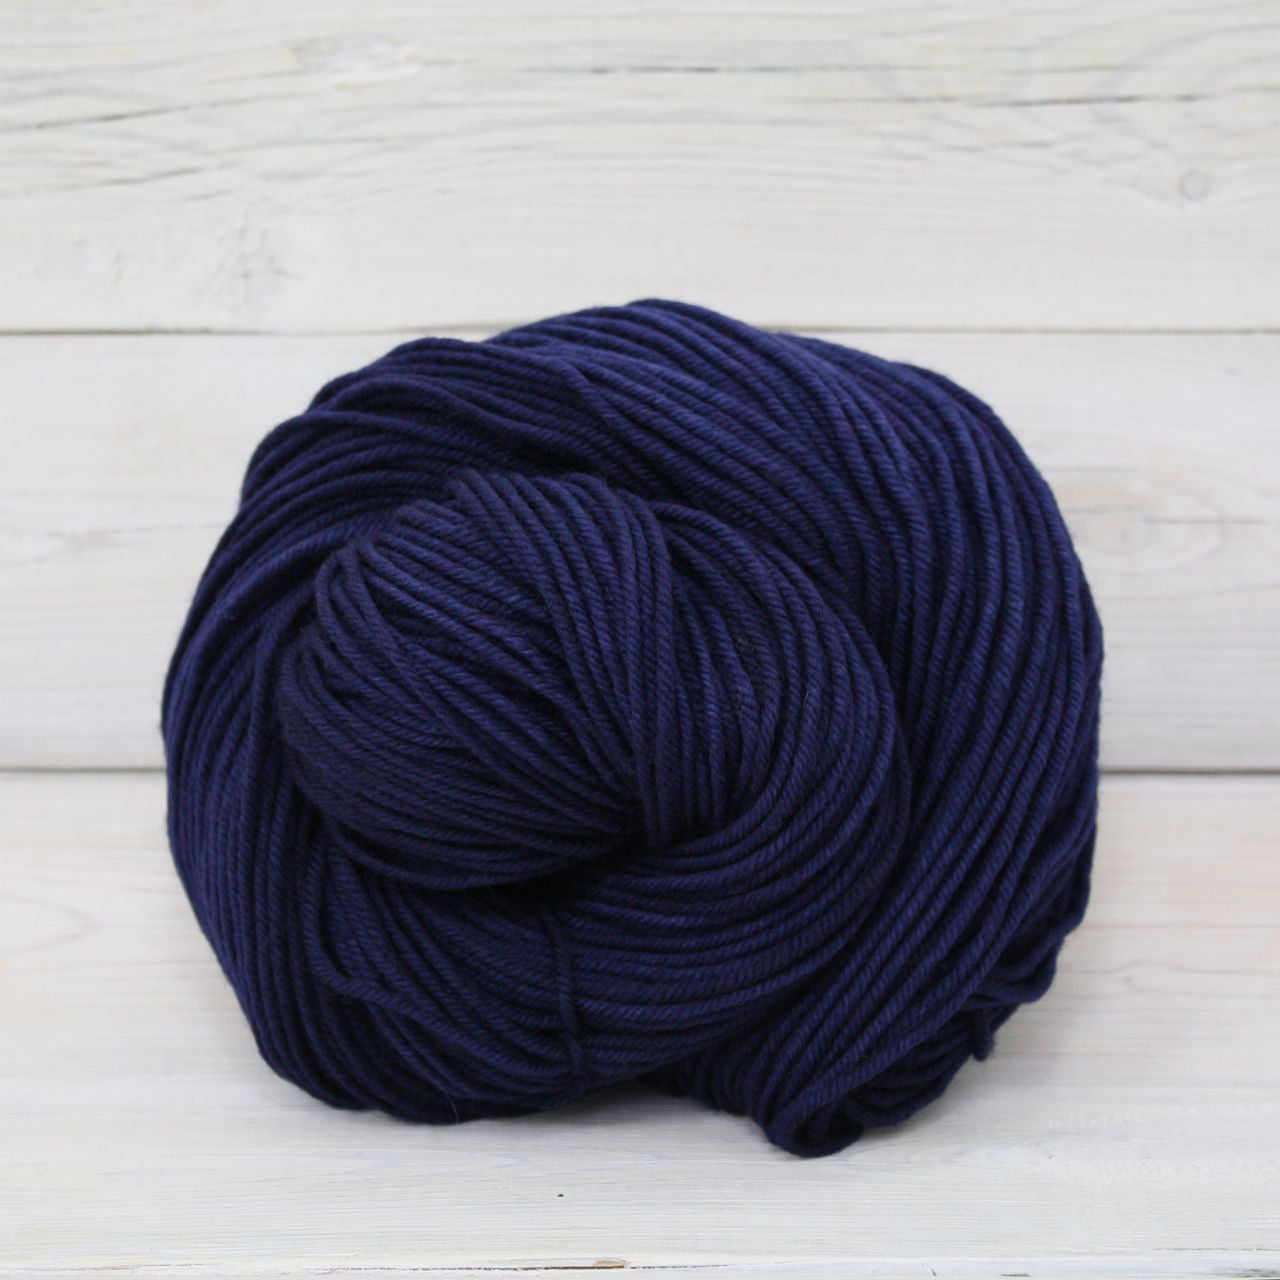 Luna Grey Fiber Arts Calypso Yarn | Colorway: Nautical Blue